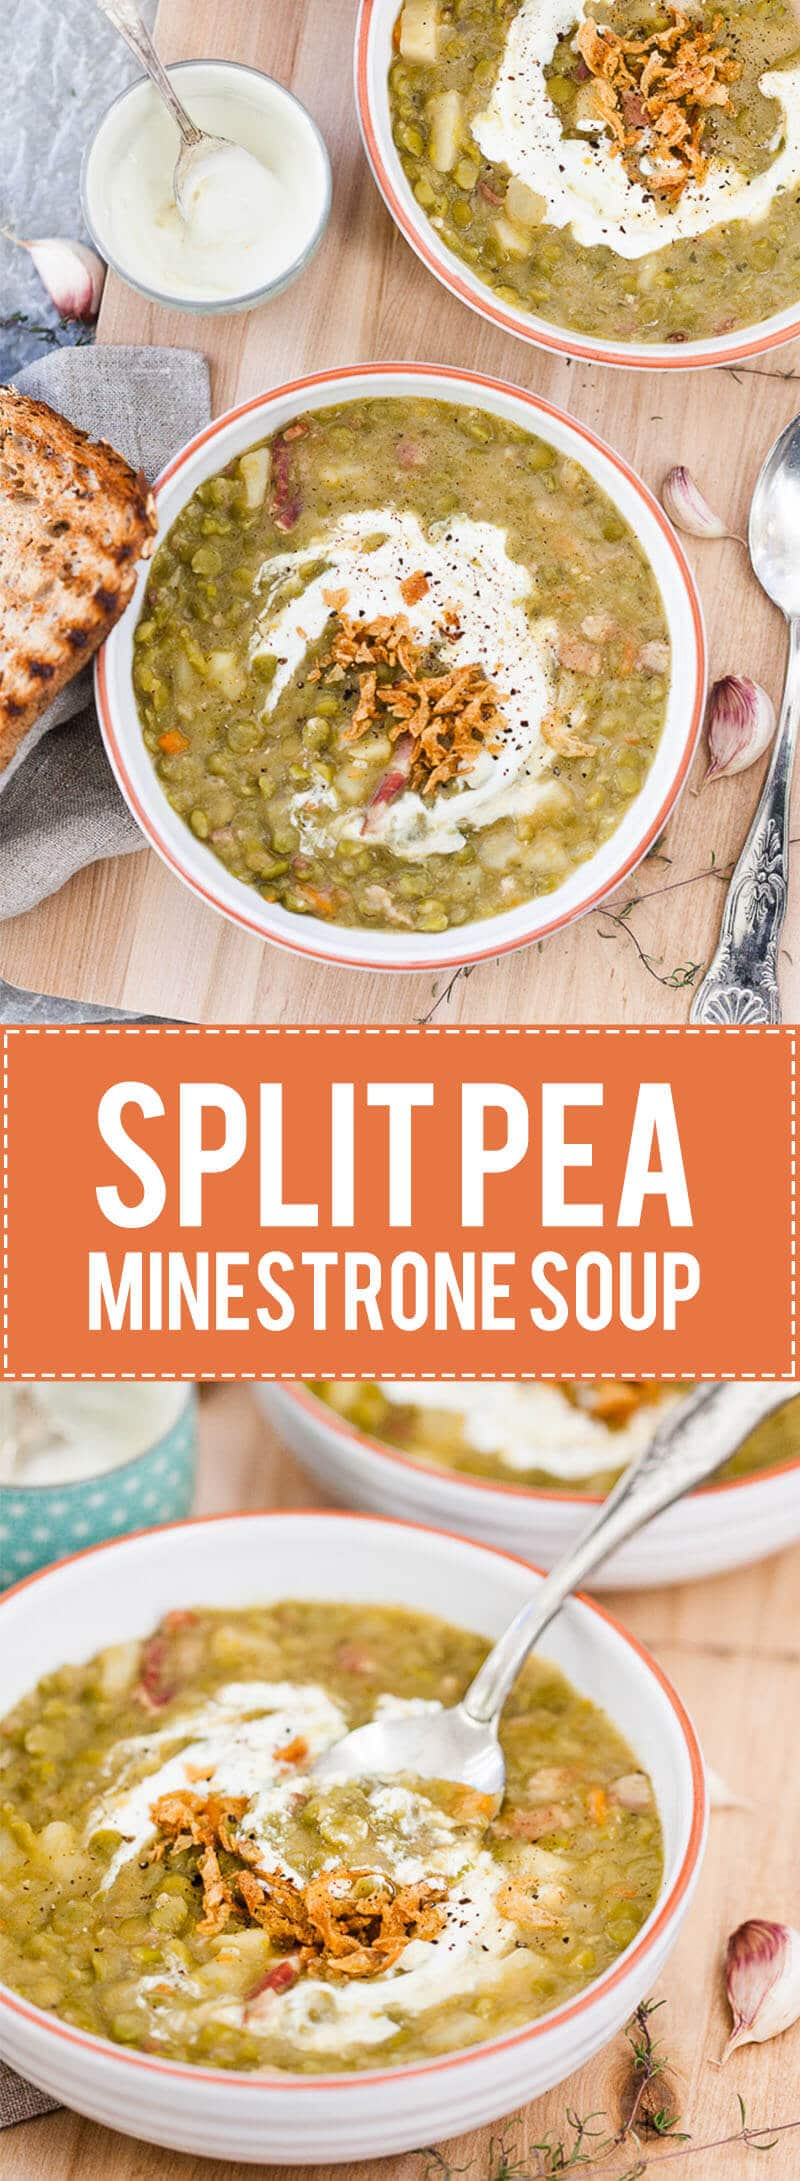 This Split Pea Minestrone is a rustic winter comfort food that will warm you up on a cold day. Skip bacon for a vegetarian option!